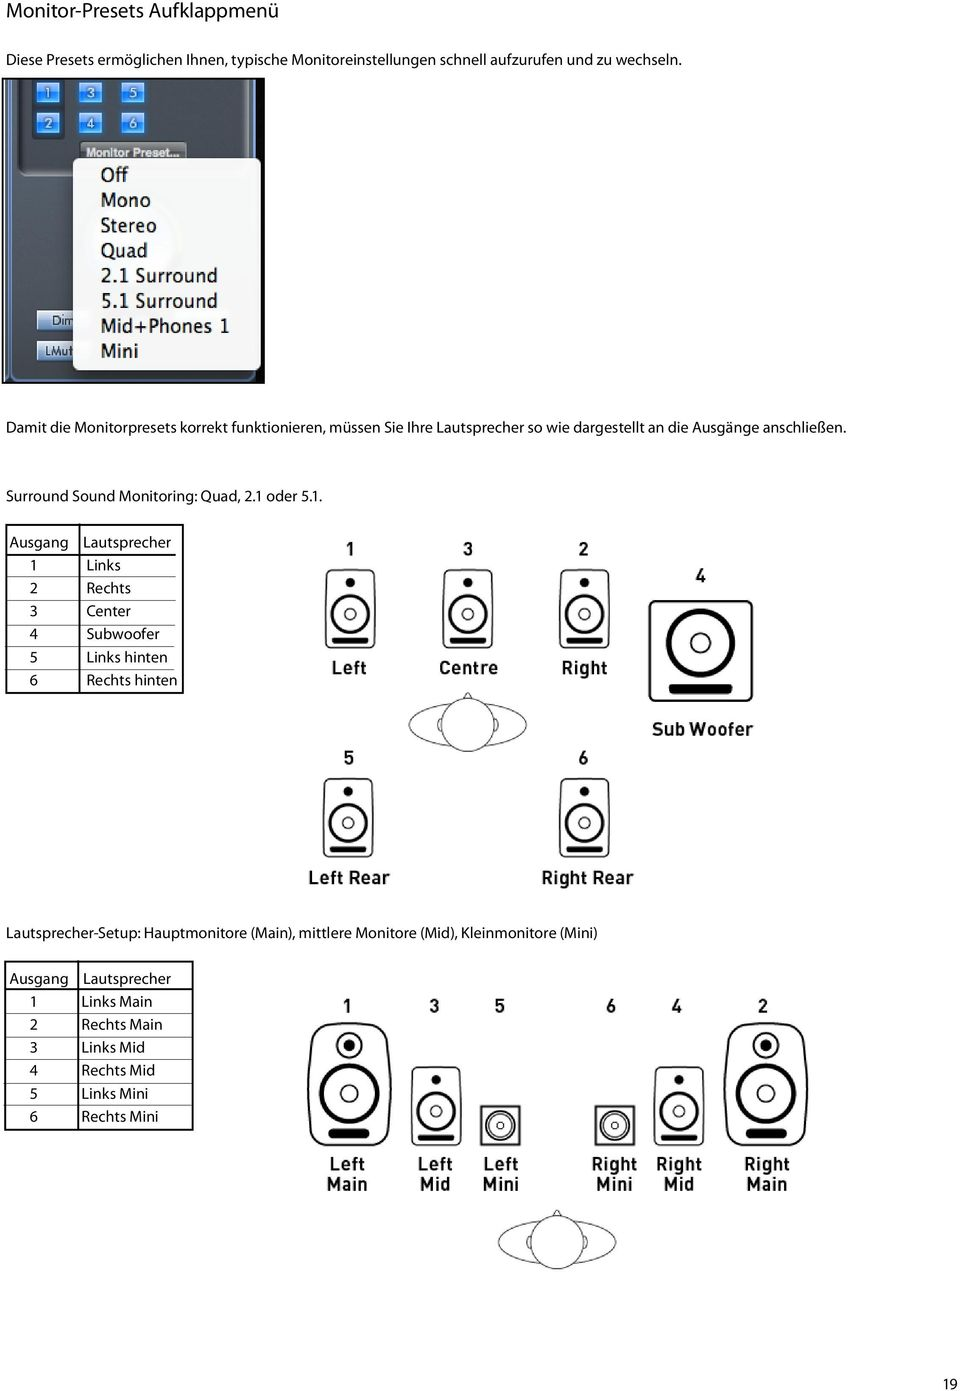 Surround Sound Monitoring: Quad, 2.1